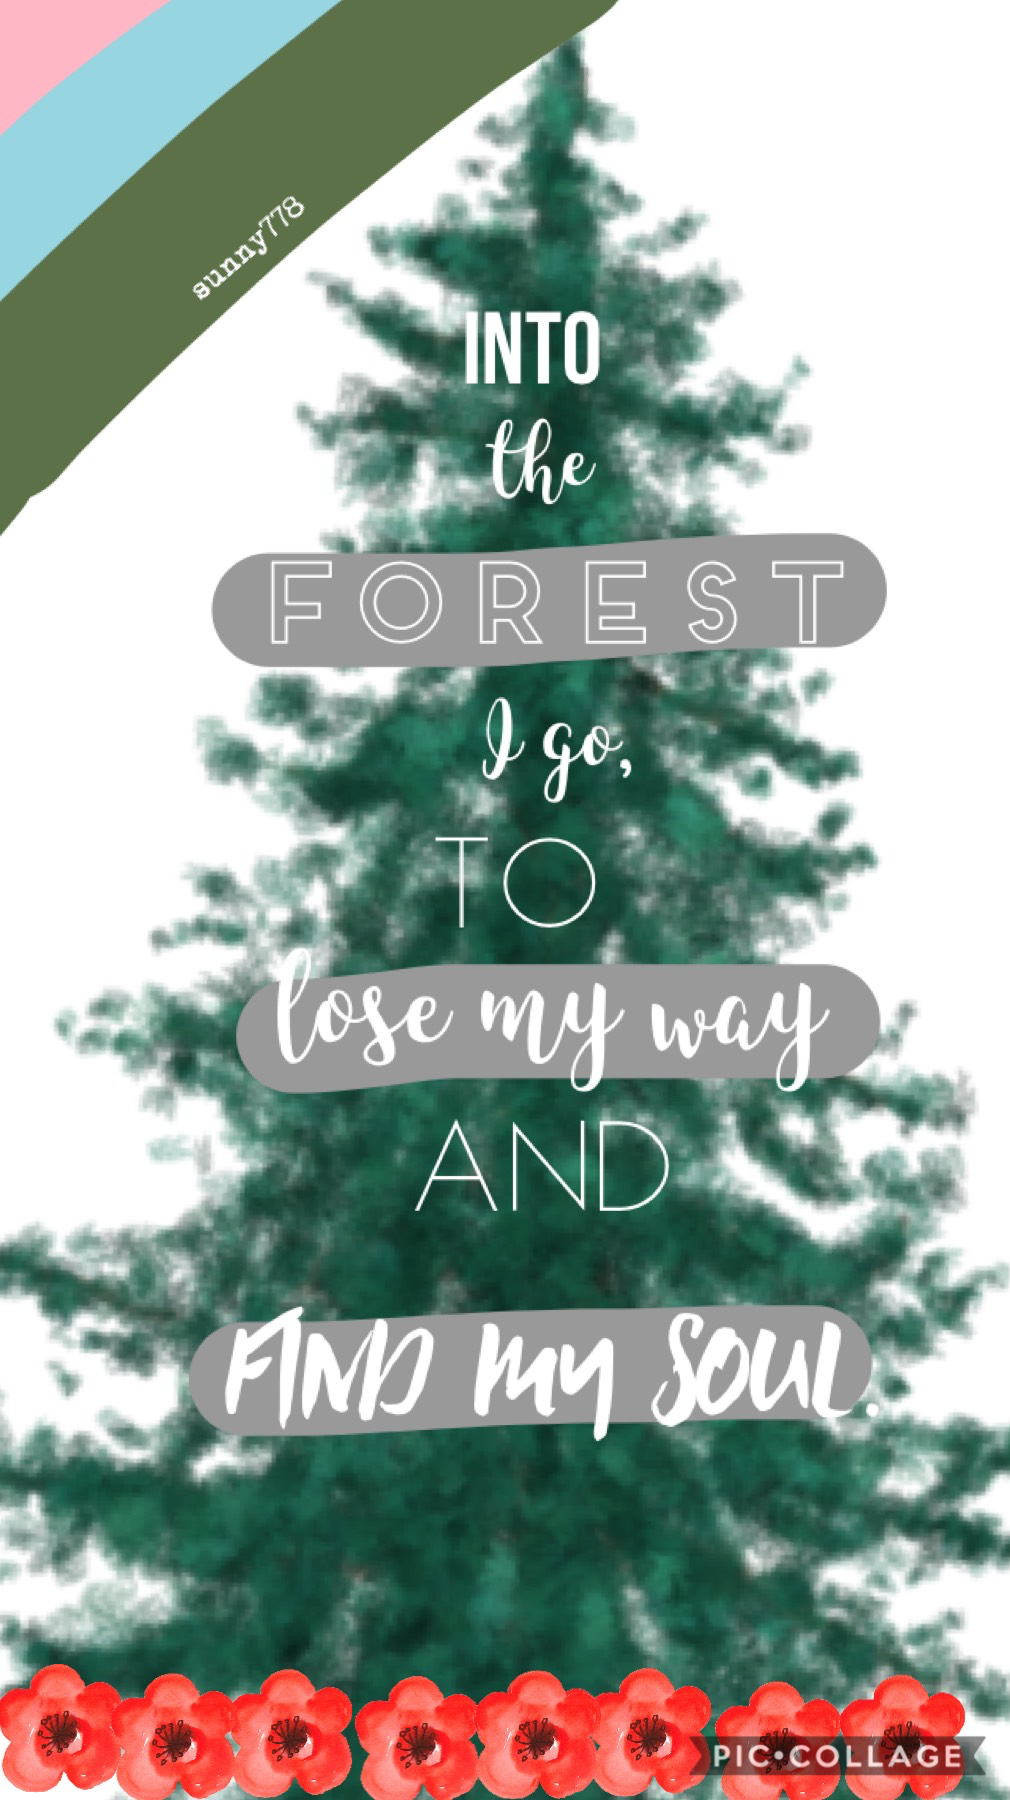 🌳3/12/18🌳 - a beautiful quote I saw on a drink bottle, so I decided to make a post out of it! I literally threw this together in 5 mins, so not my best ... but if you like it hit the ❤️!!   22 days till Christmas 🎄!